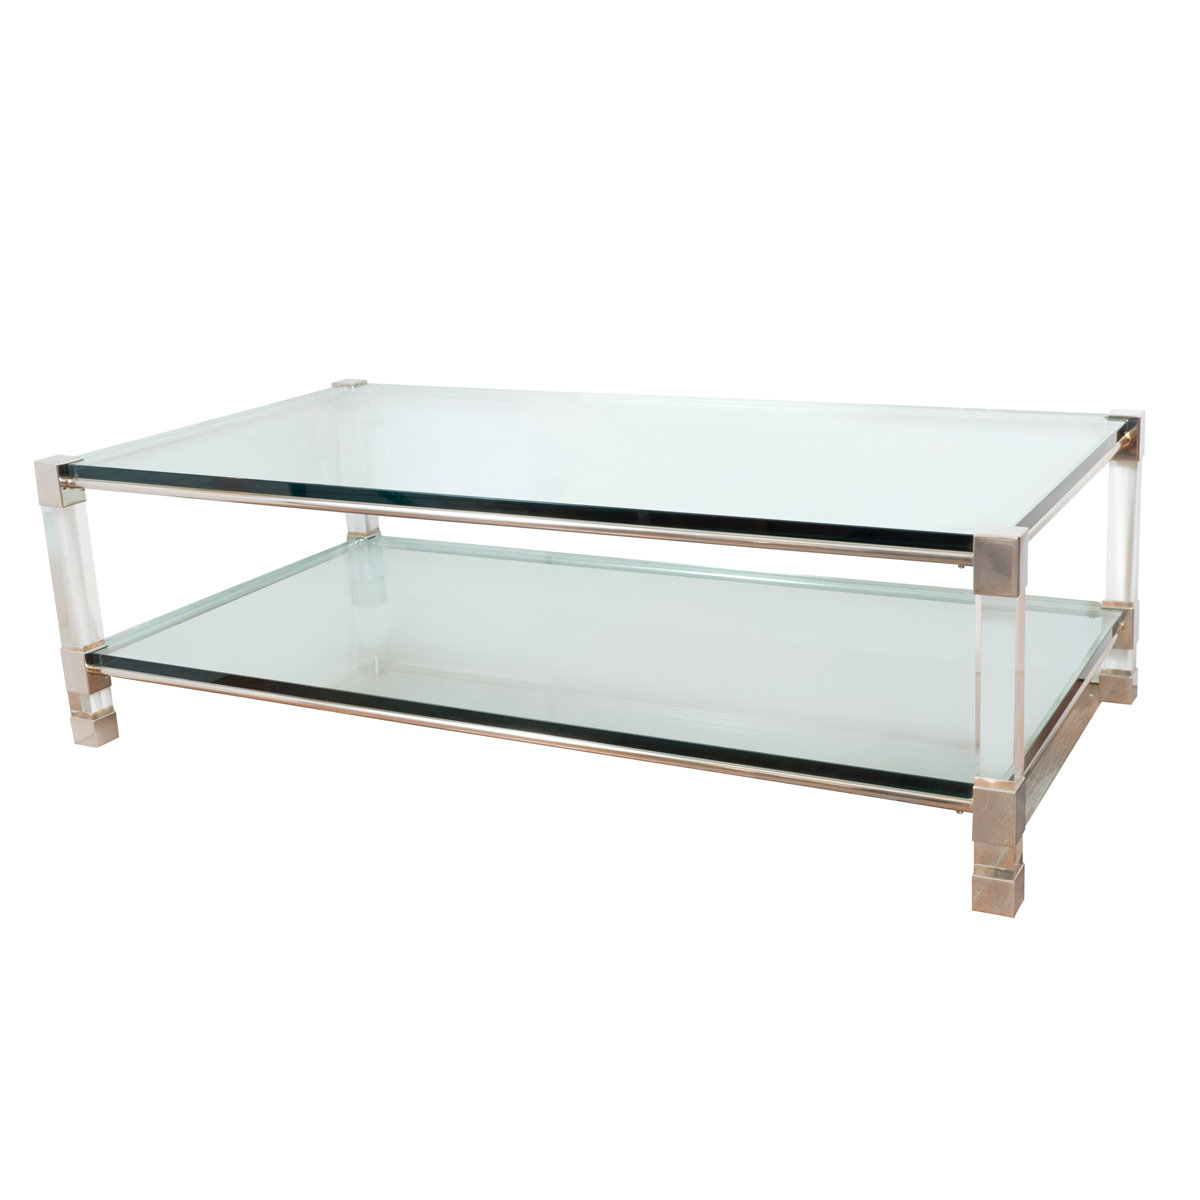 Lucite Coffee Table Excellent Black Glass Coffee Table Furniture Lucite Coffee Tables Glass